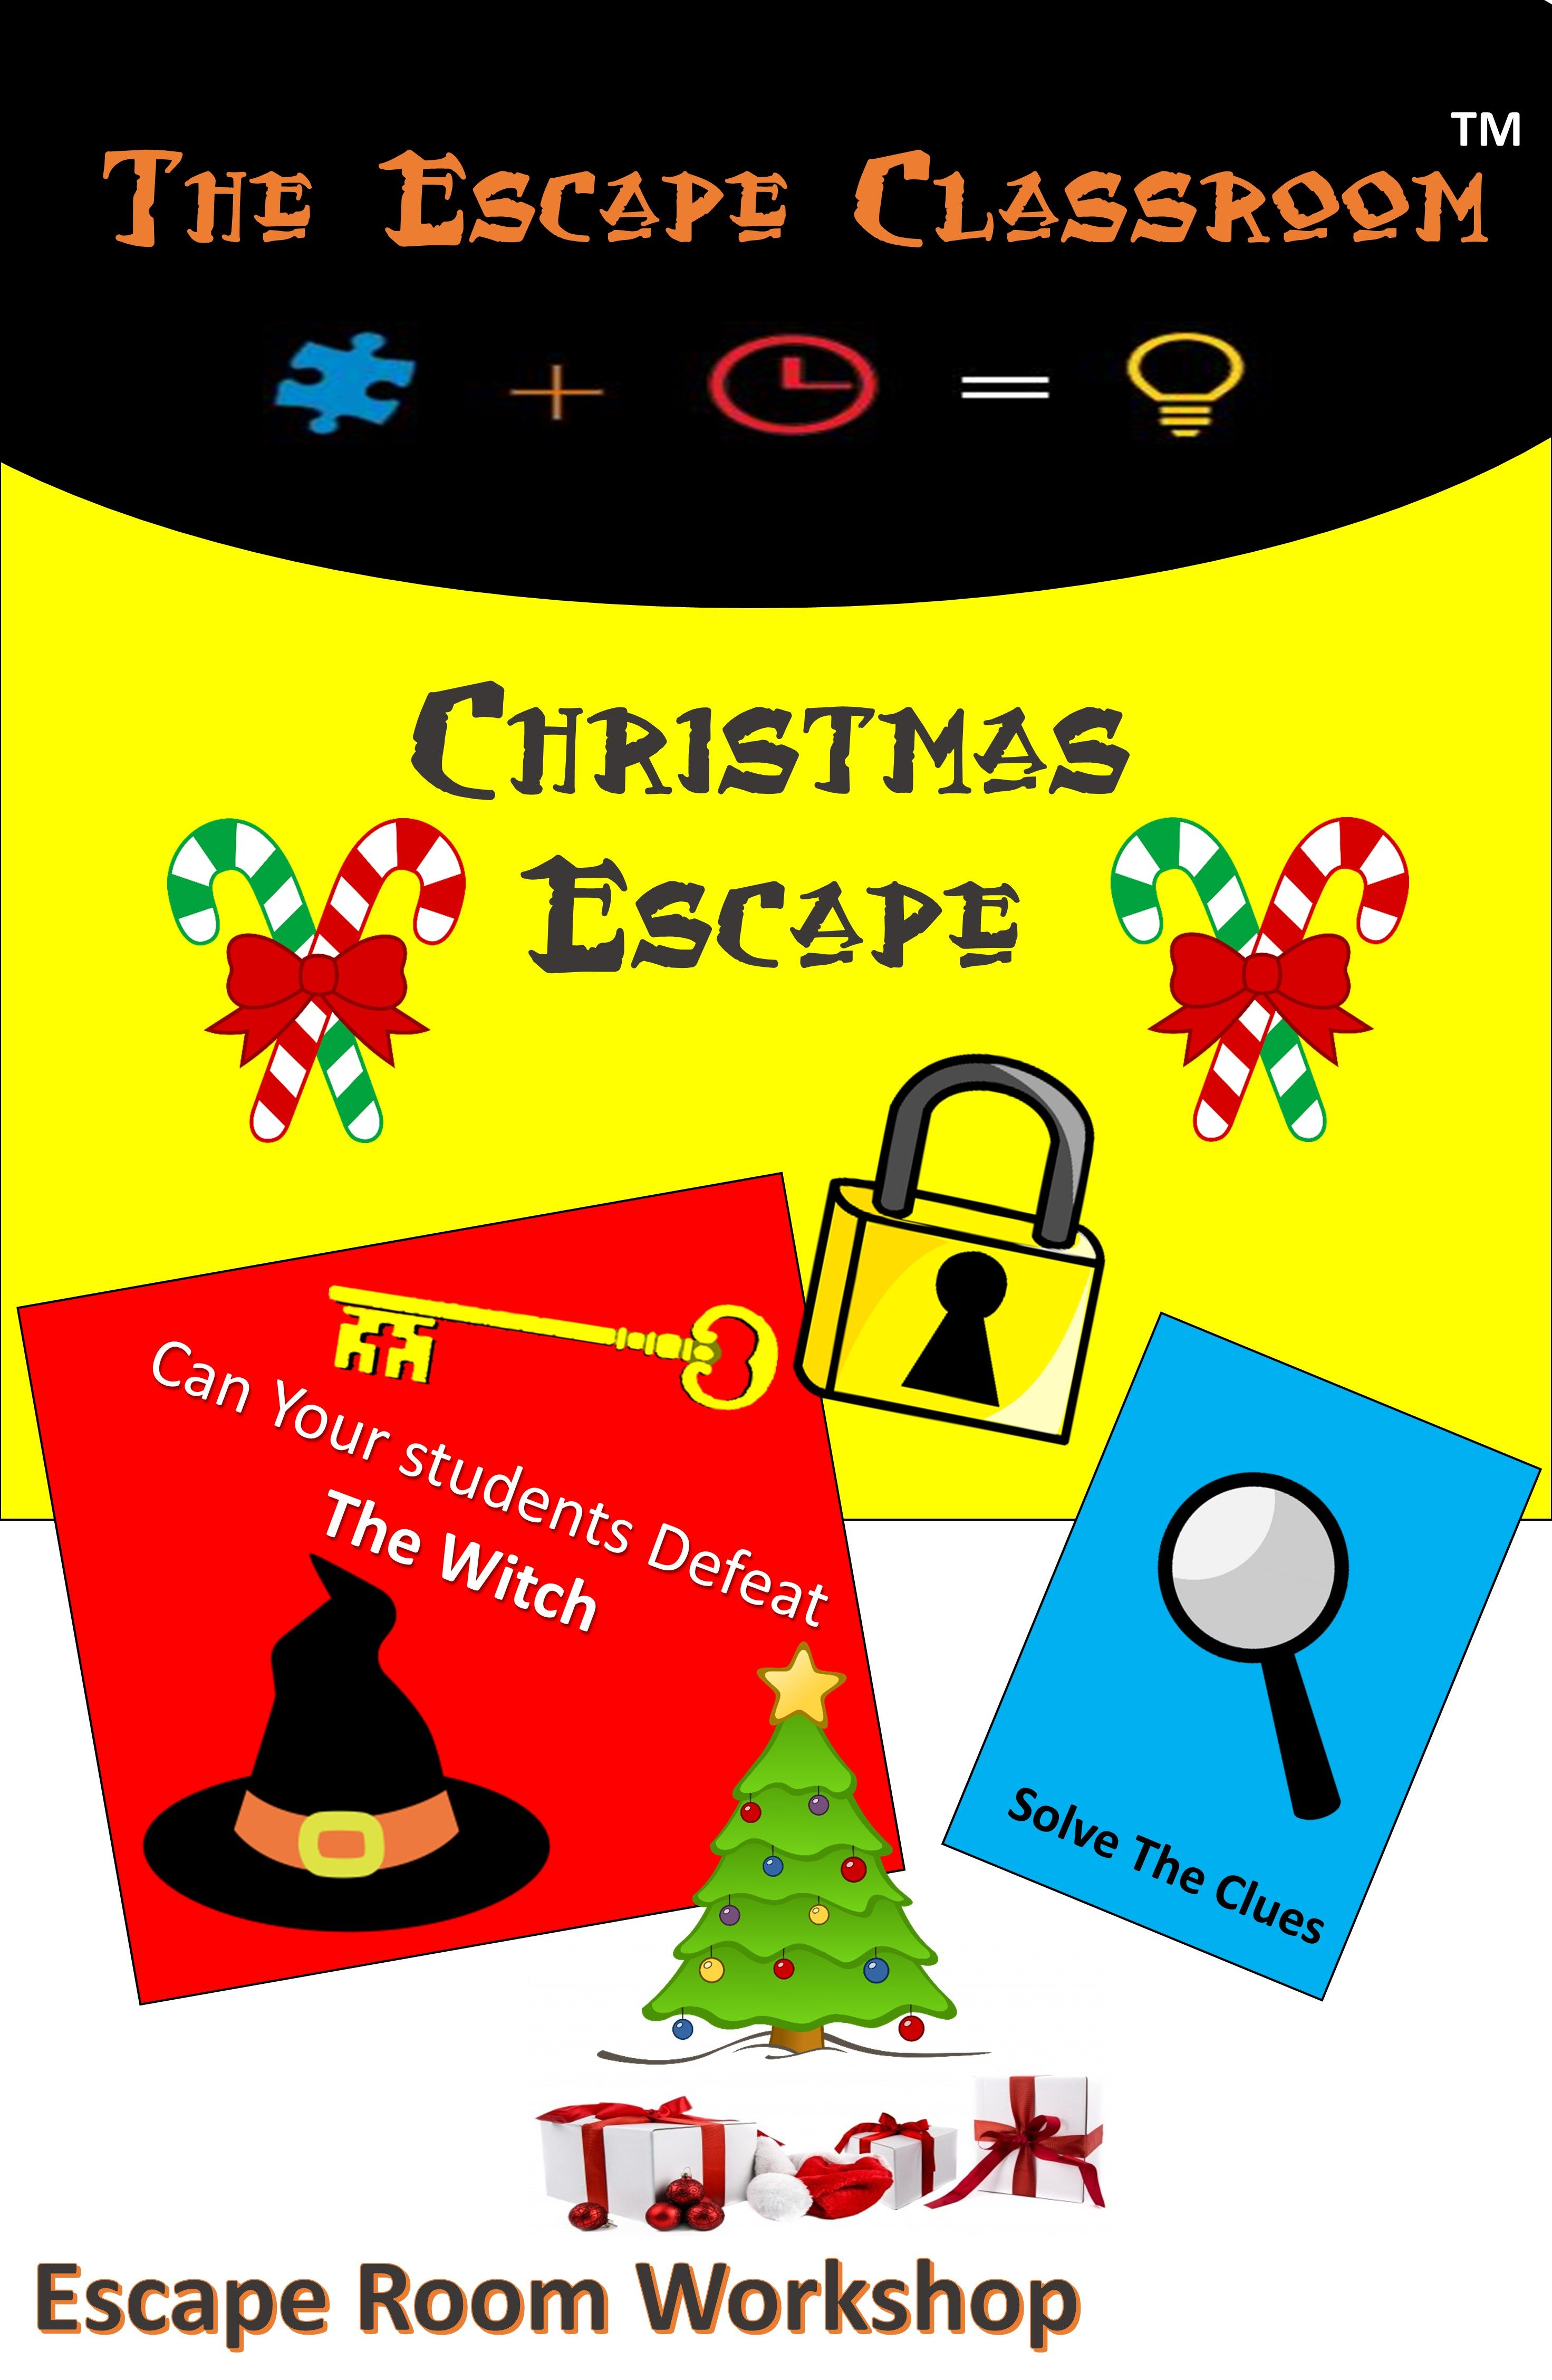 Christmas Escape Room From The Escape Classroom Escape Room Escape The Classroom Escape Room Game